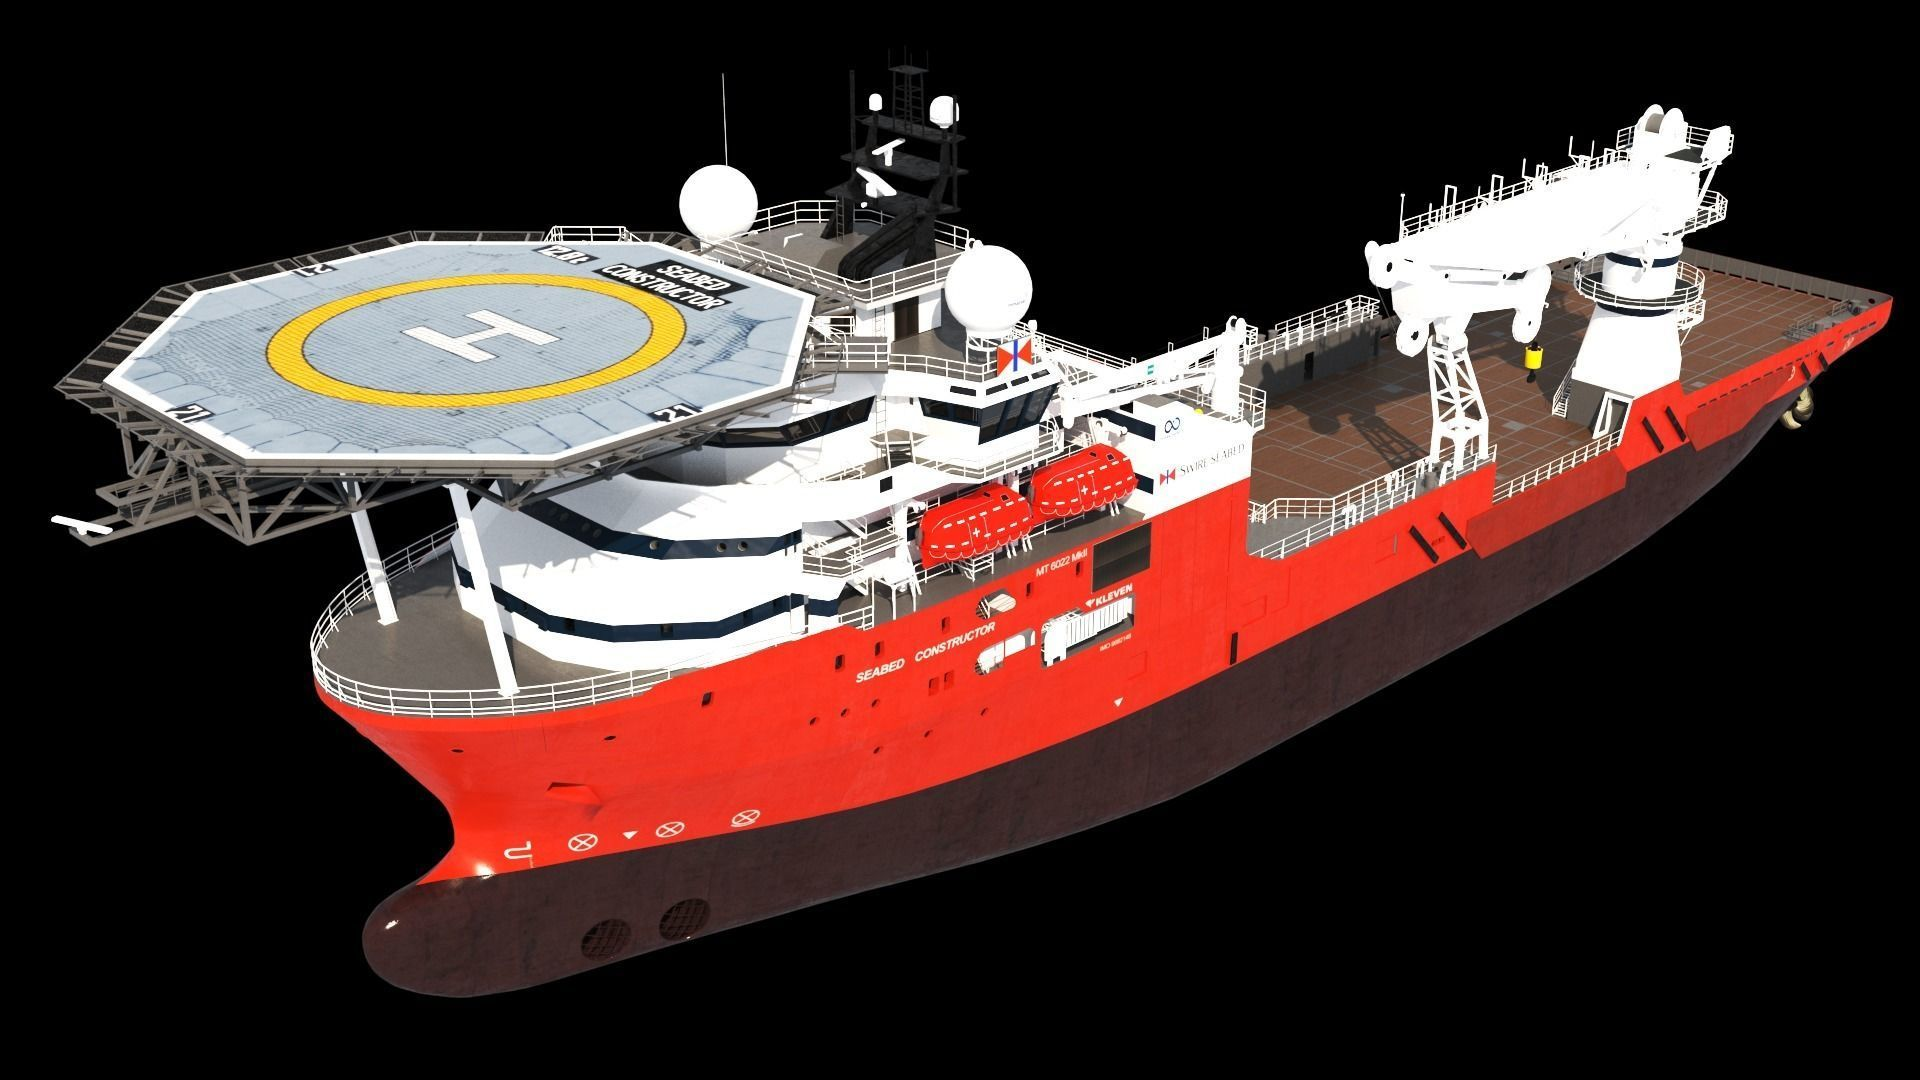 Subsea support and construction vessel